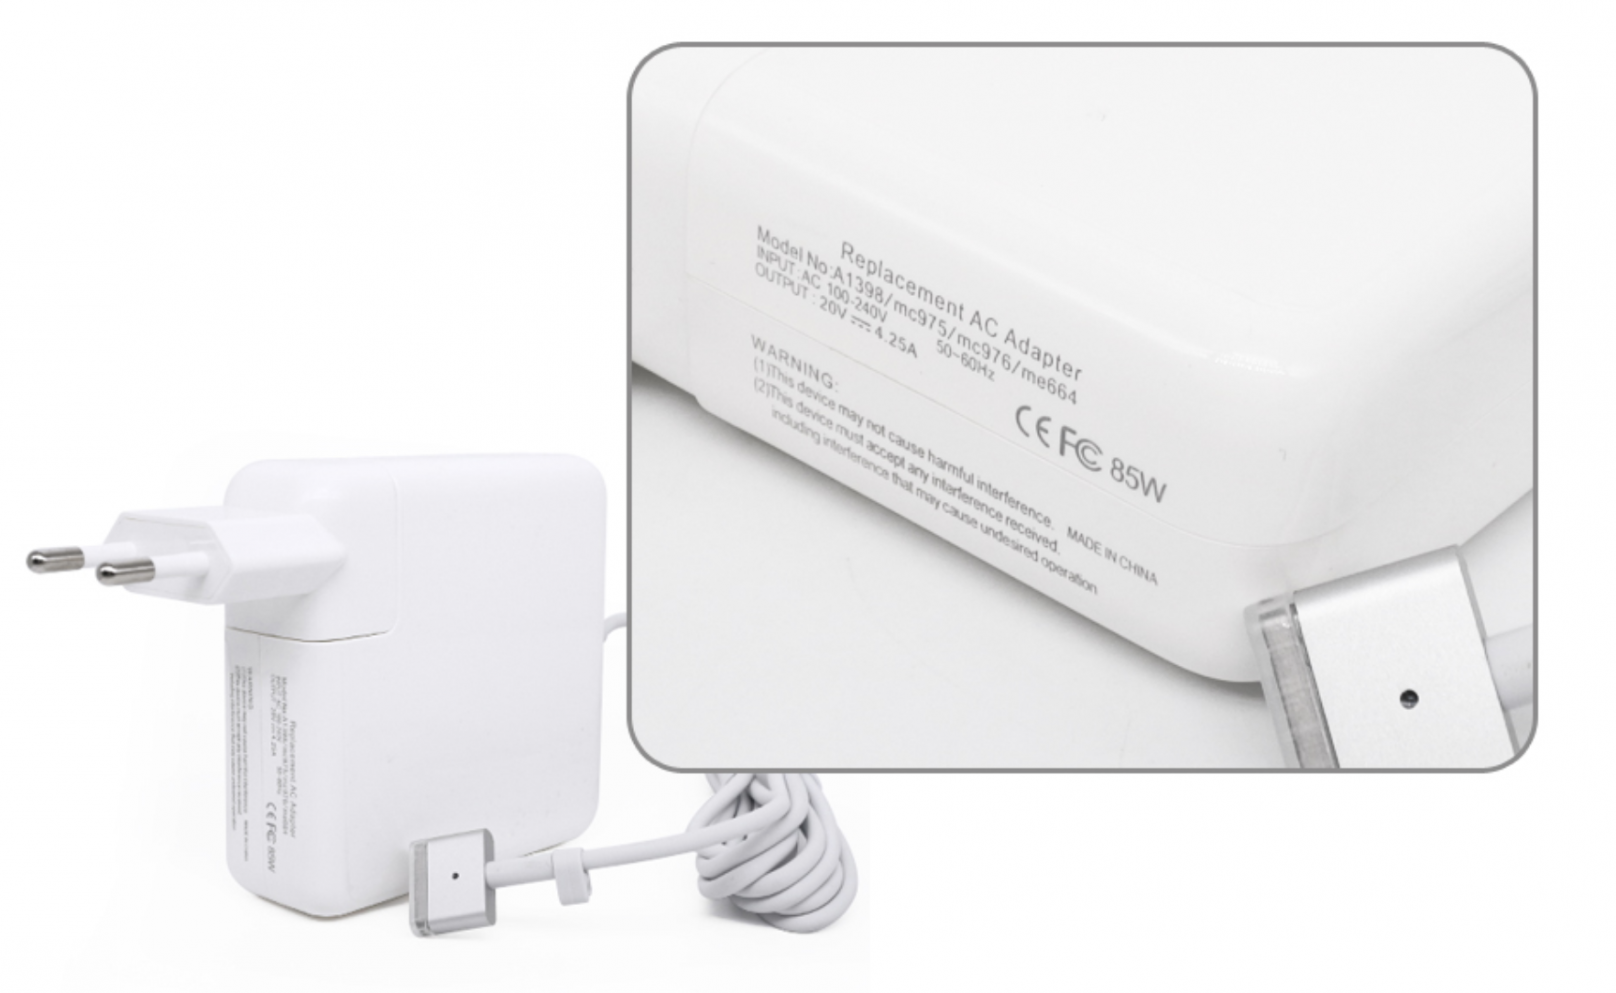 85w Magsafe 2 Ladegert Kompatibel Fr Apple Macbook 20v 425a Adapter Charger 60 Watt